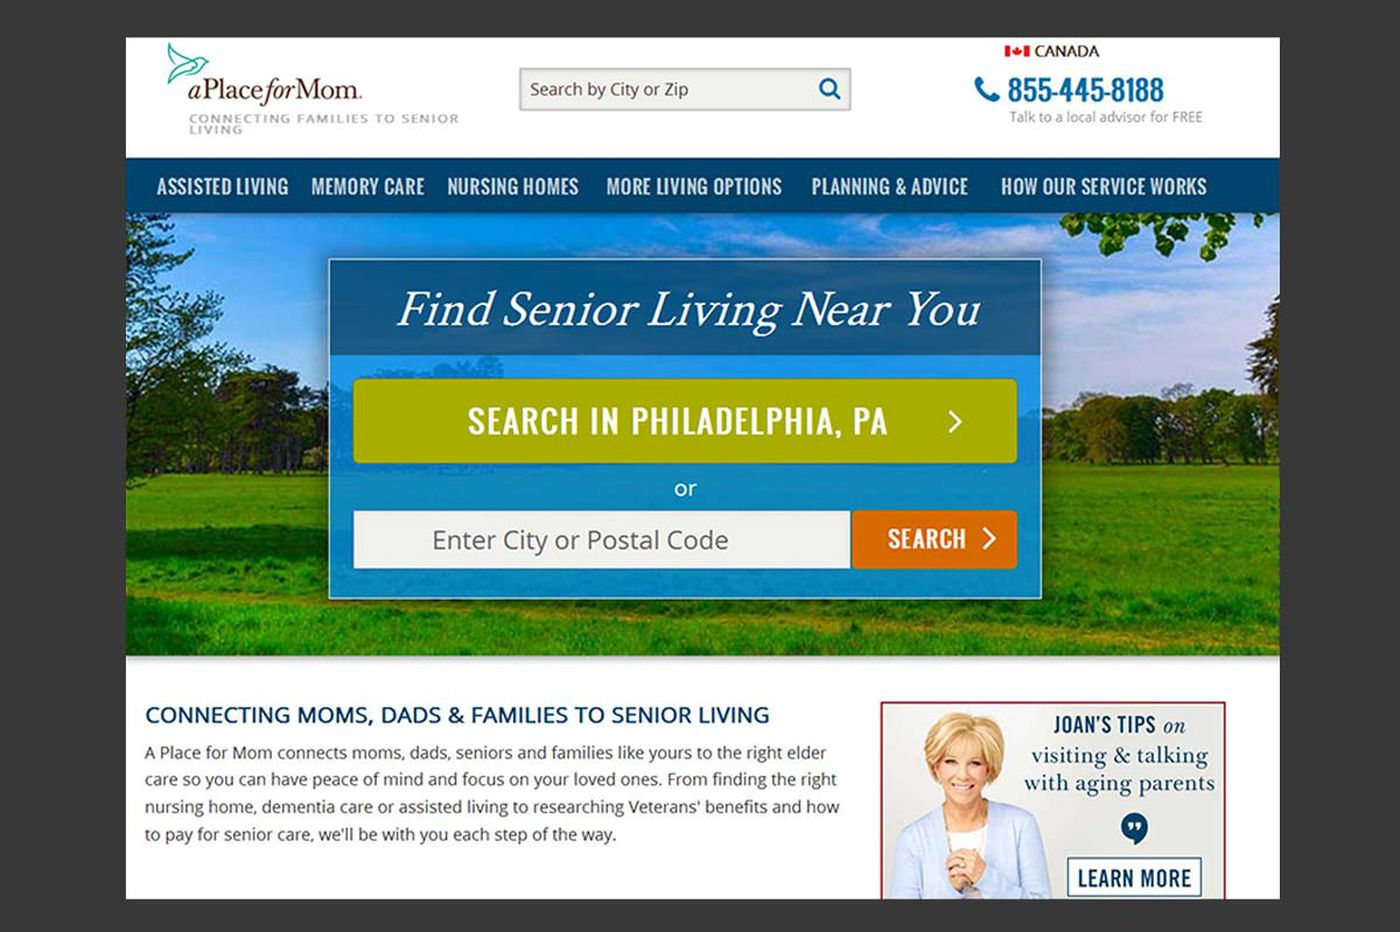 Whom to consult for help finding senior housing